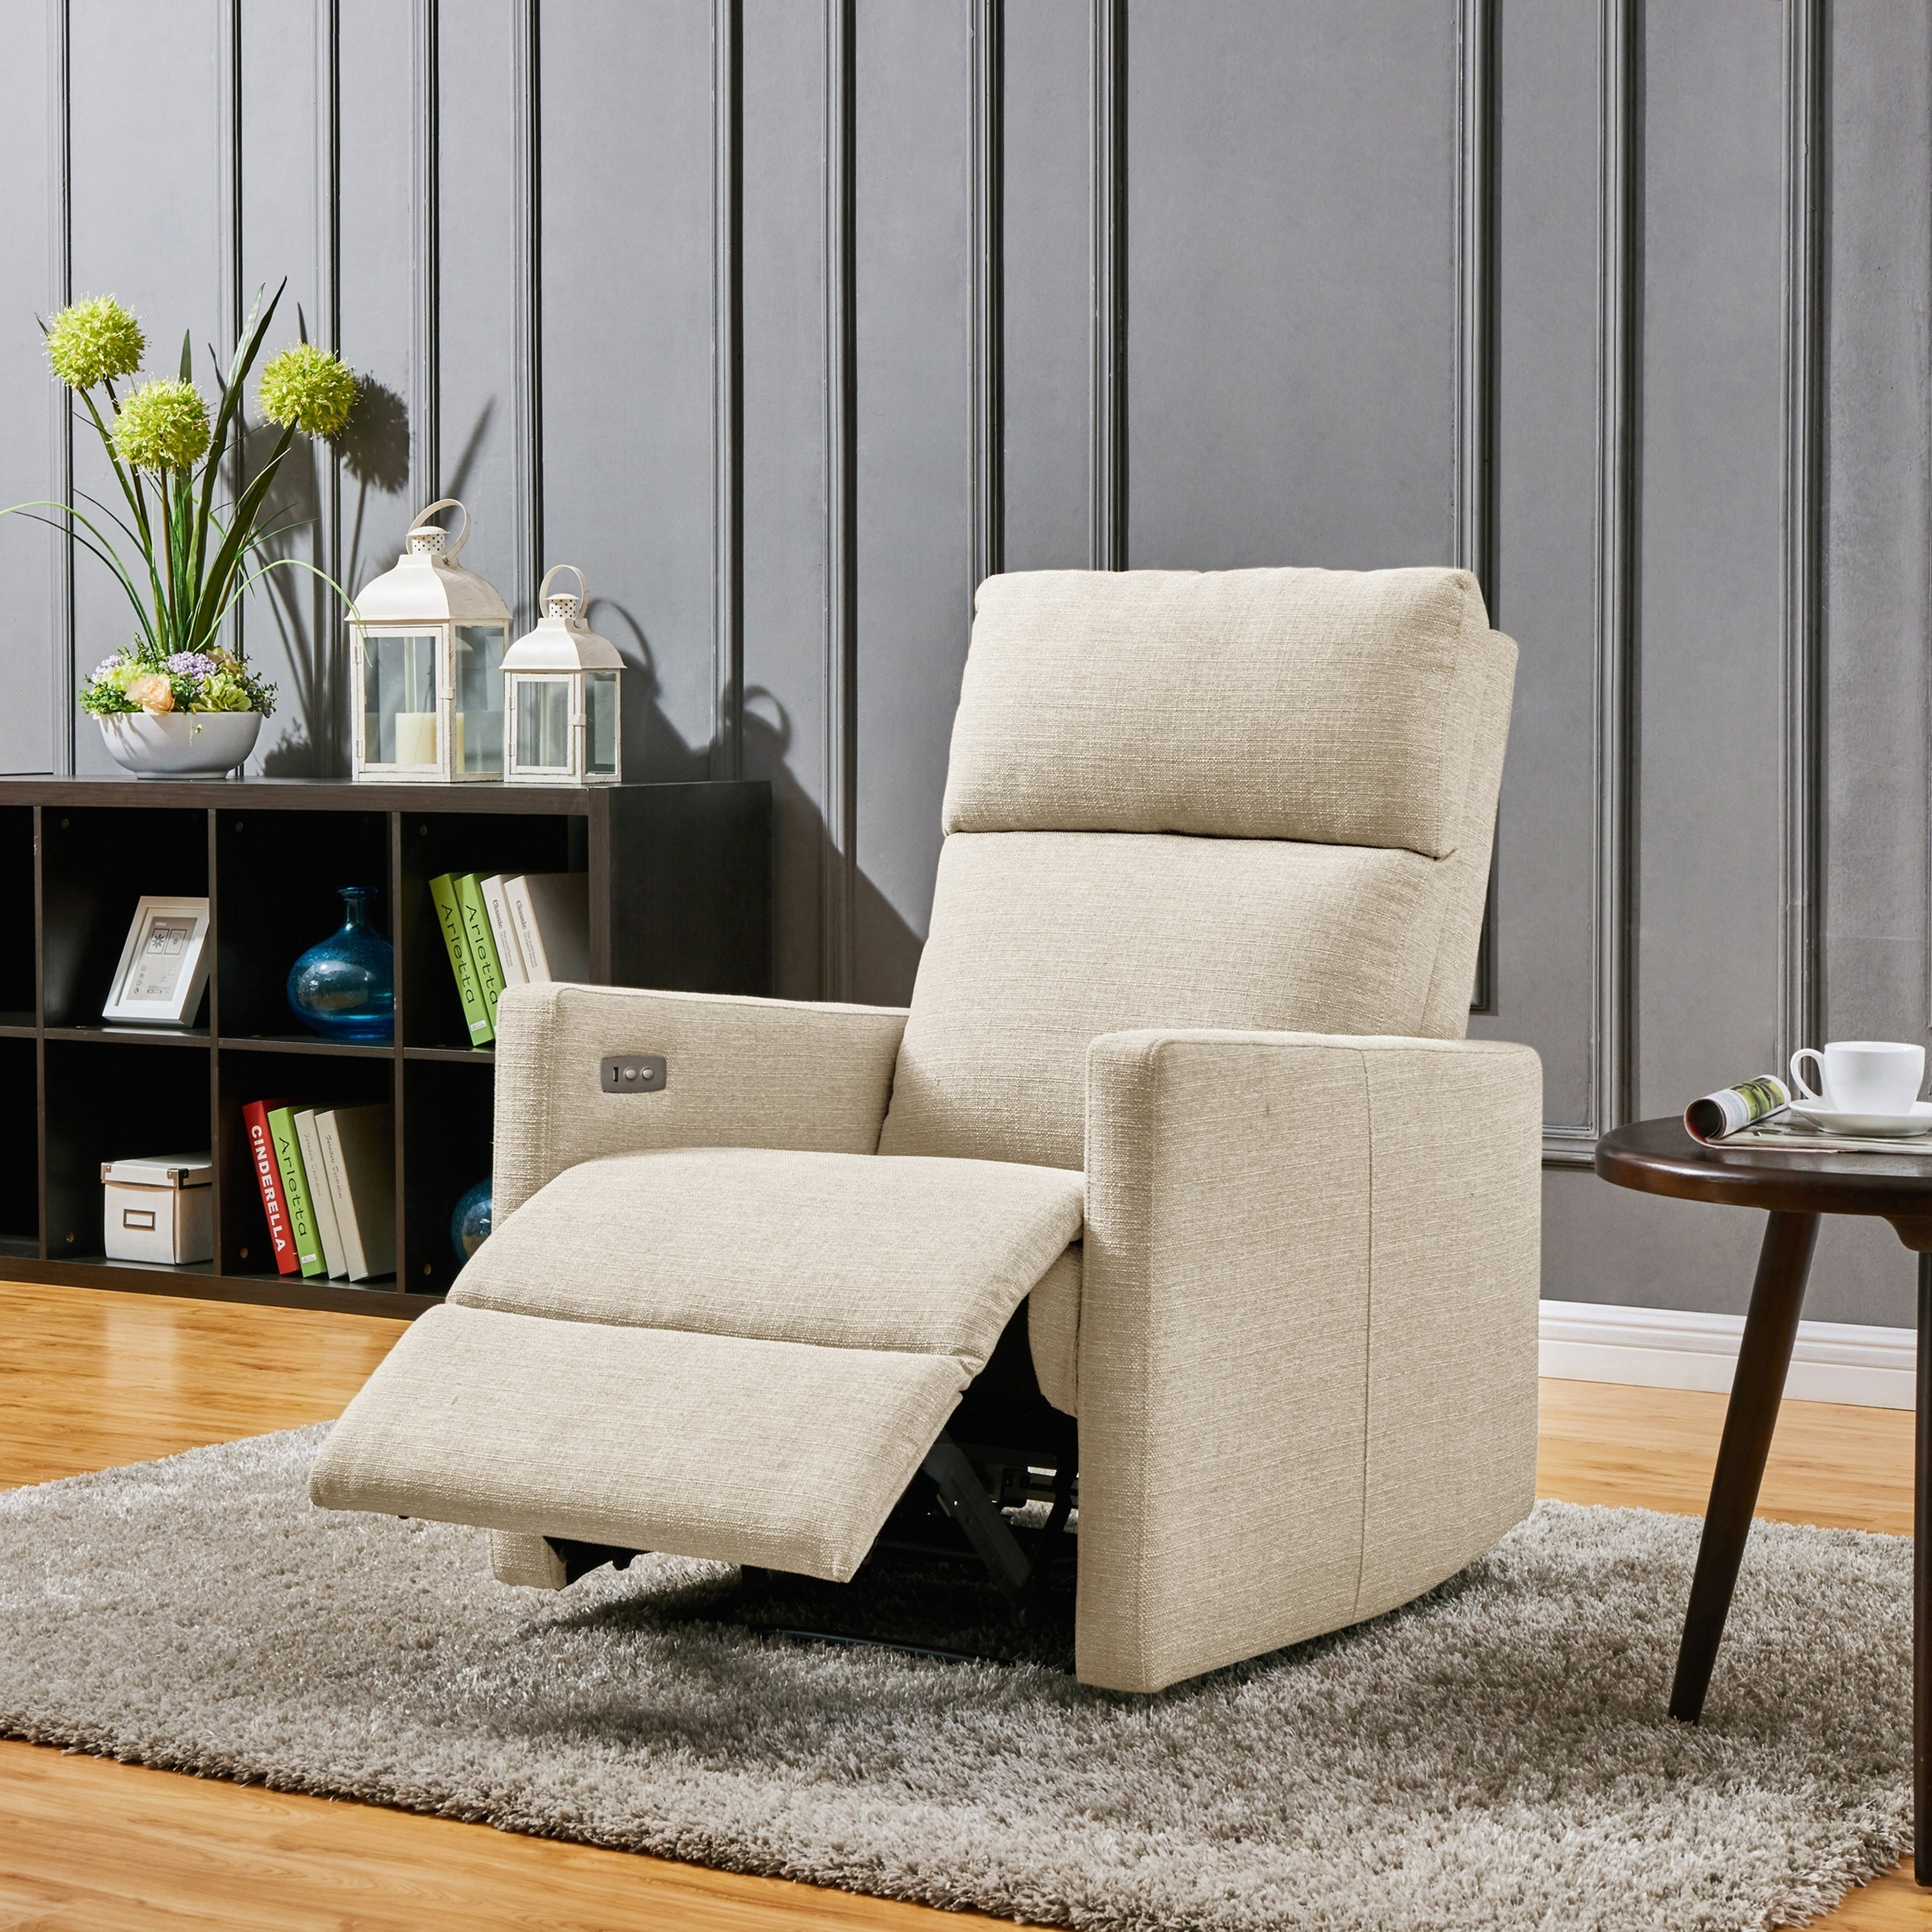 Admirable Prolounger Tan Linen Power Wall Hugger Reclining Chair With Usb Port Pabps2019 Chair Design Images Pabps2019Com